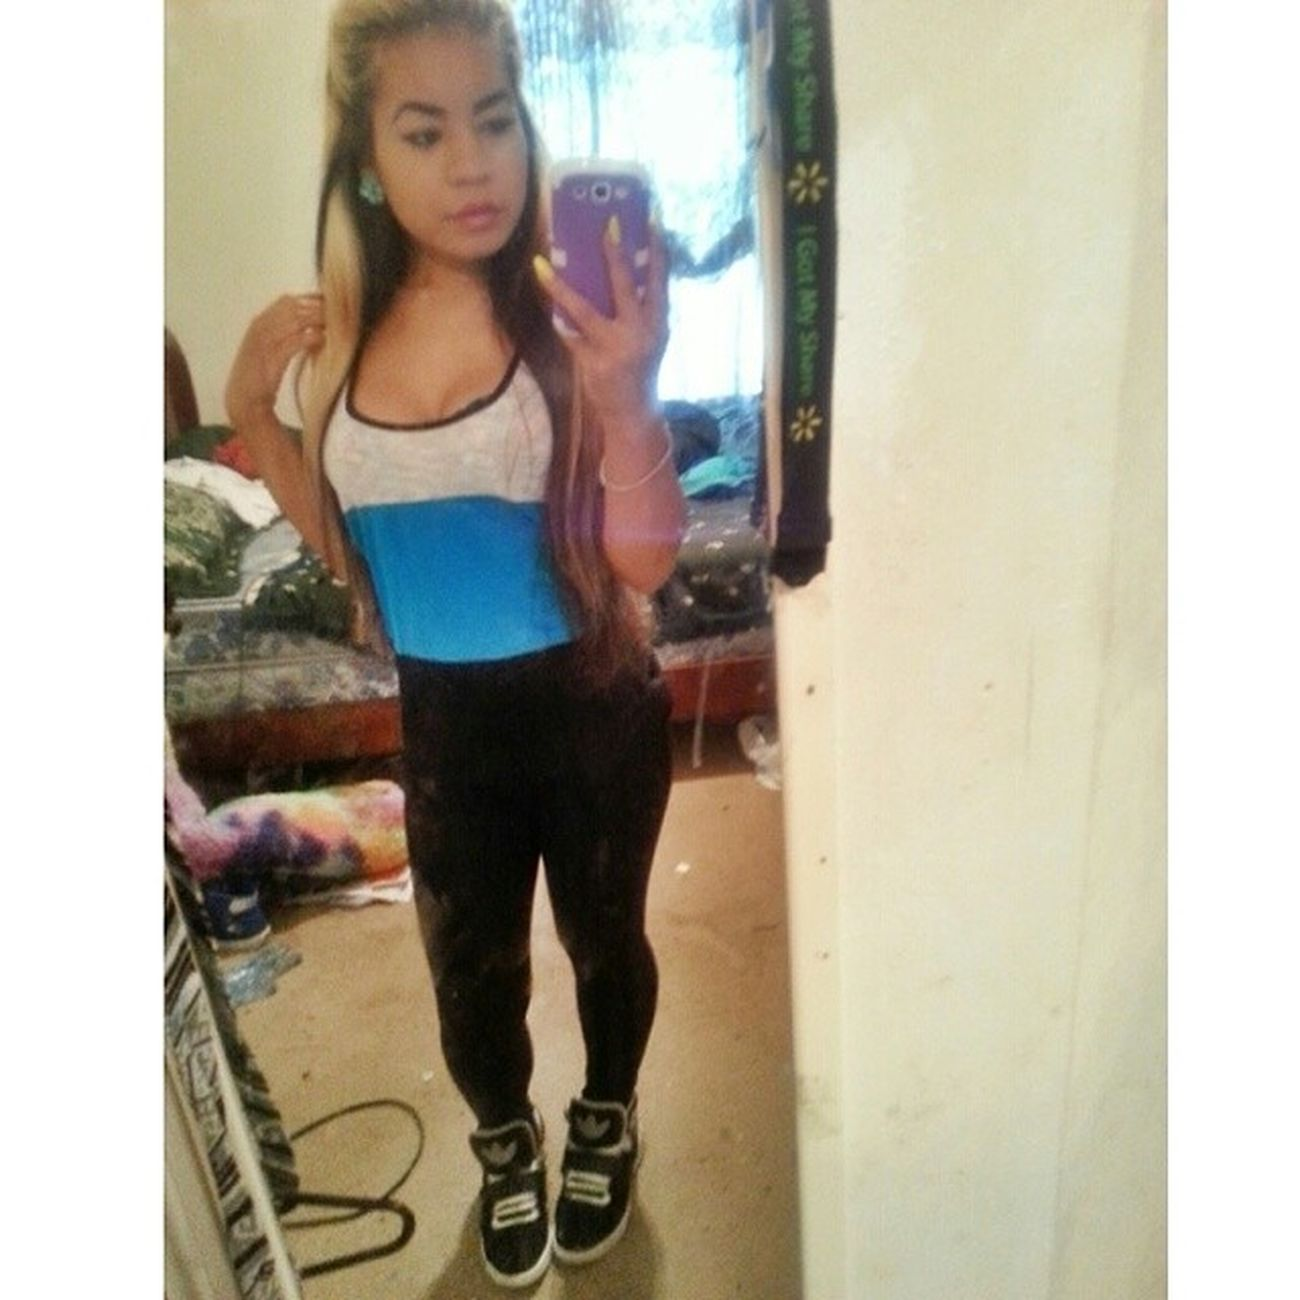 Understand there's nothing I won't do for you. But the longer I wait the faster I'll fade away. Selfie Ootd Khmer Khmerican Cambodian Jacksonville florida chickswithkicks asian adidas tanktop leggings blonde instaselfie instapic